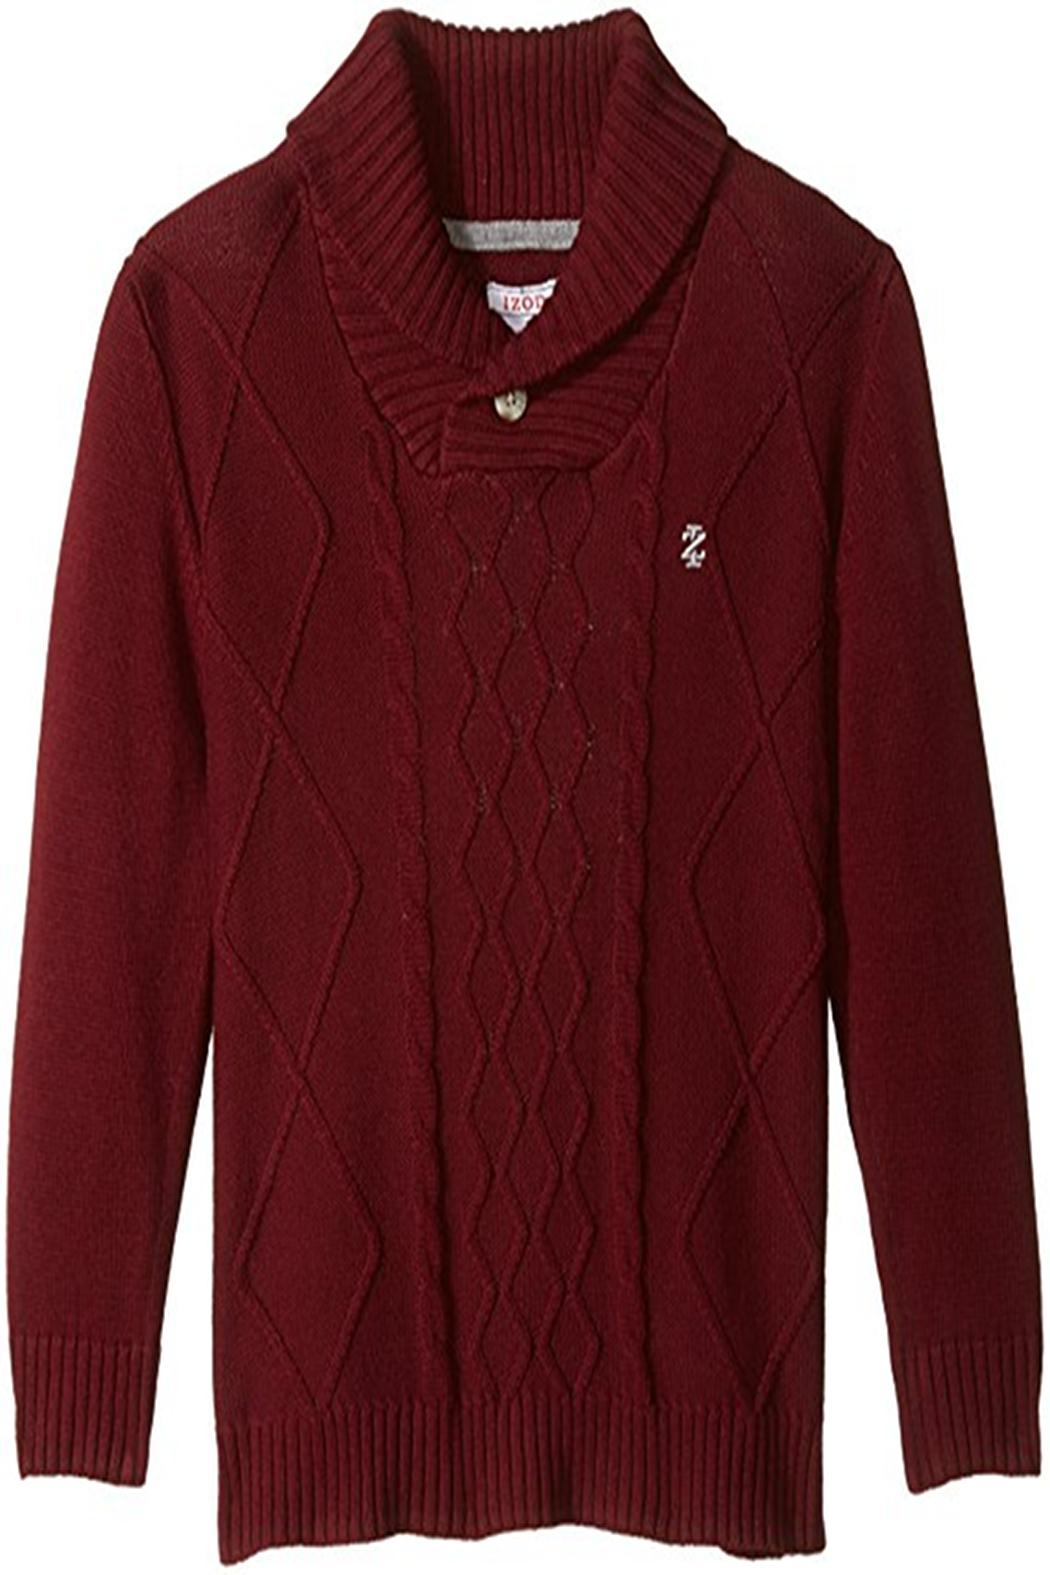 Izod Shawl Collar Sweater - Main Image